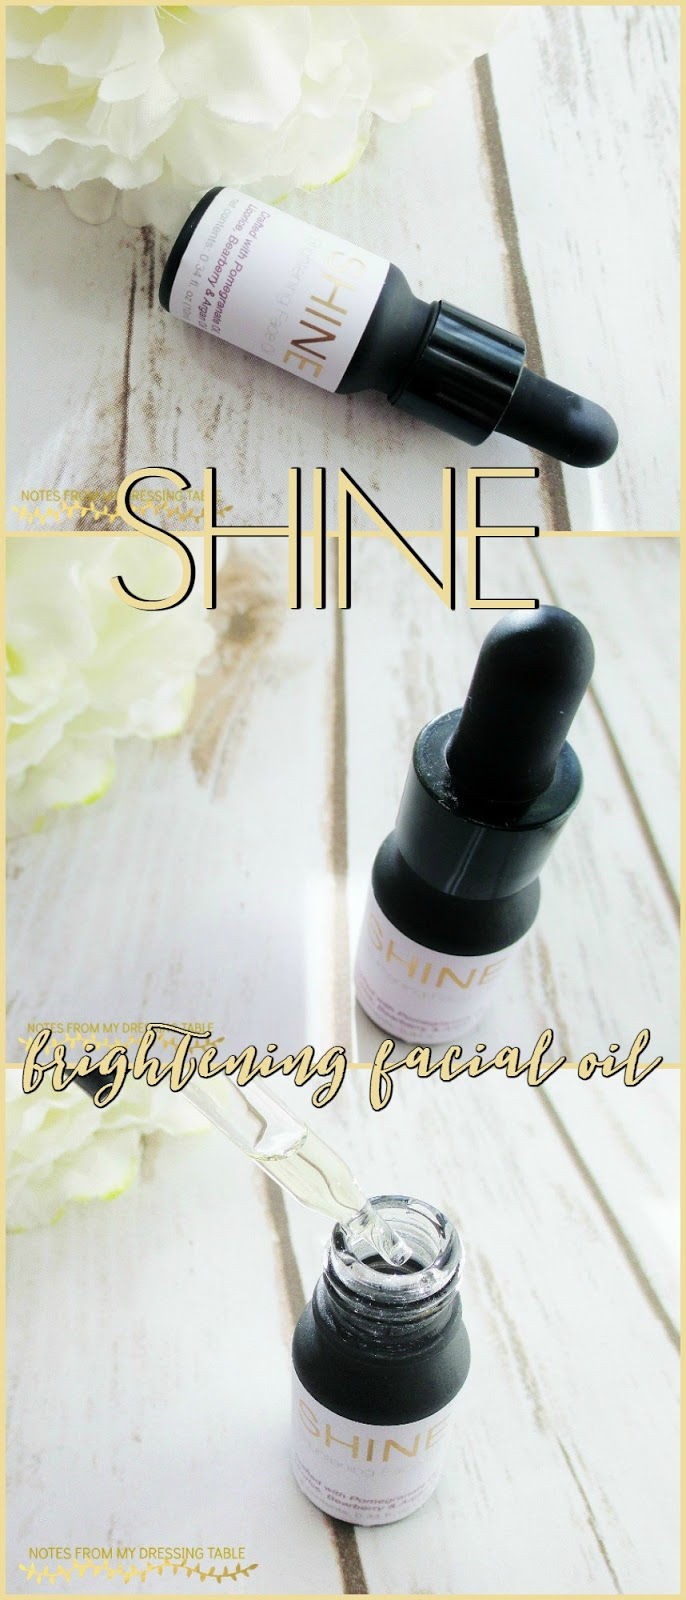 shine-brightening-facial-oil-4